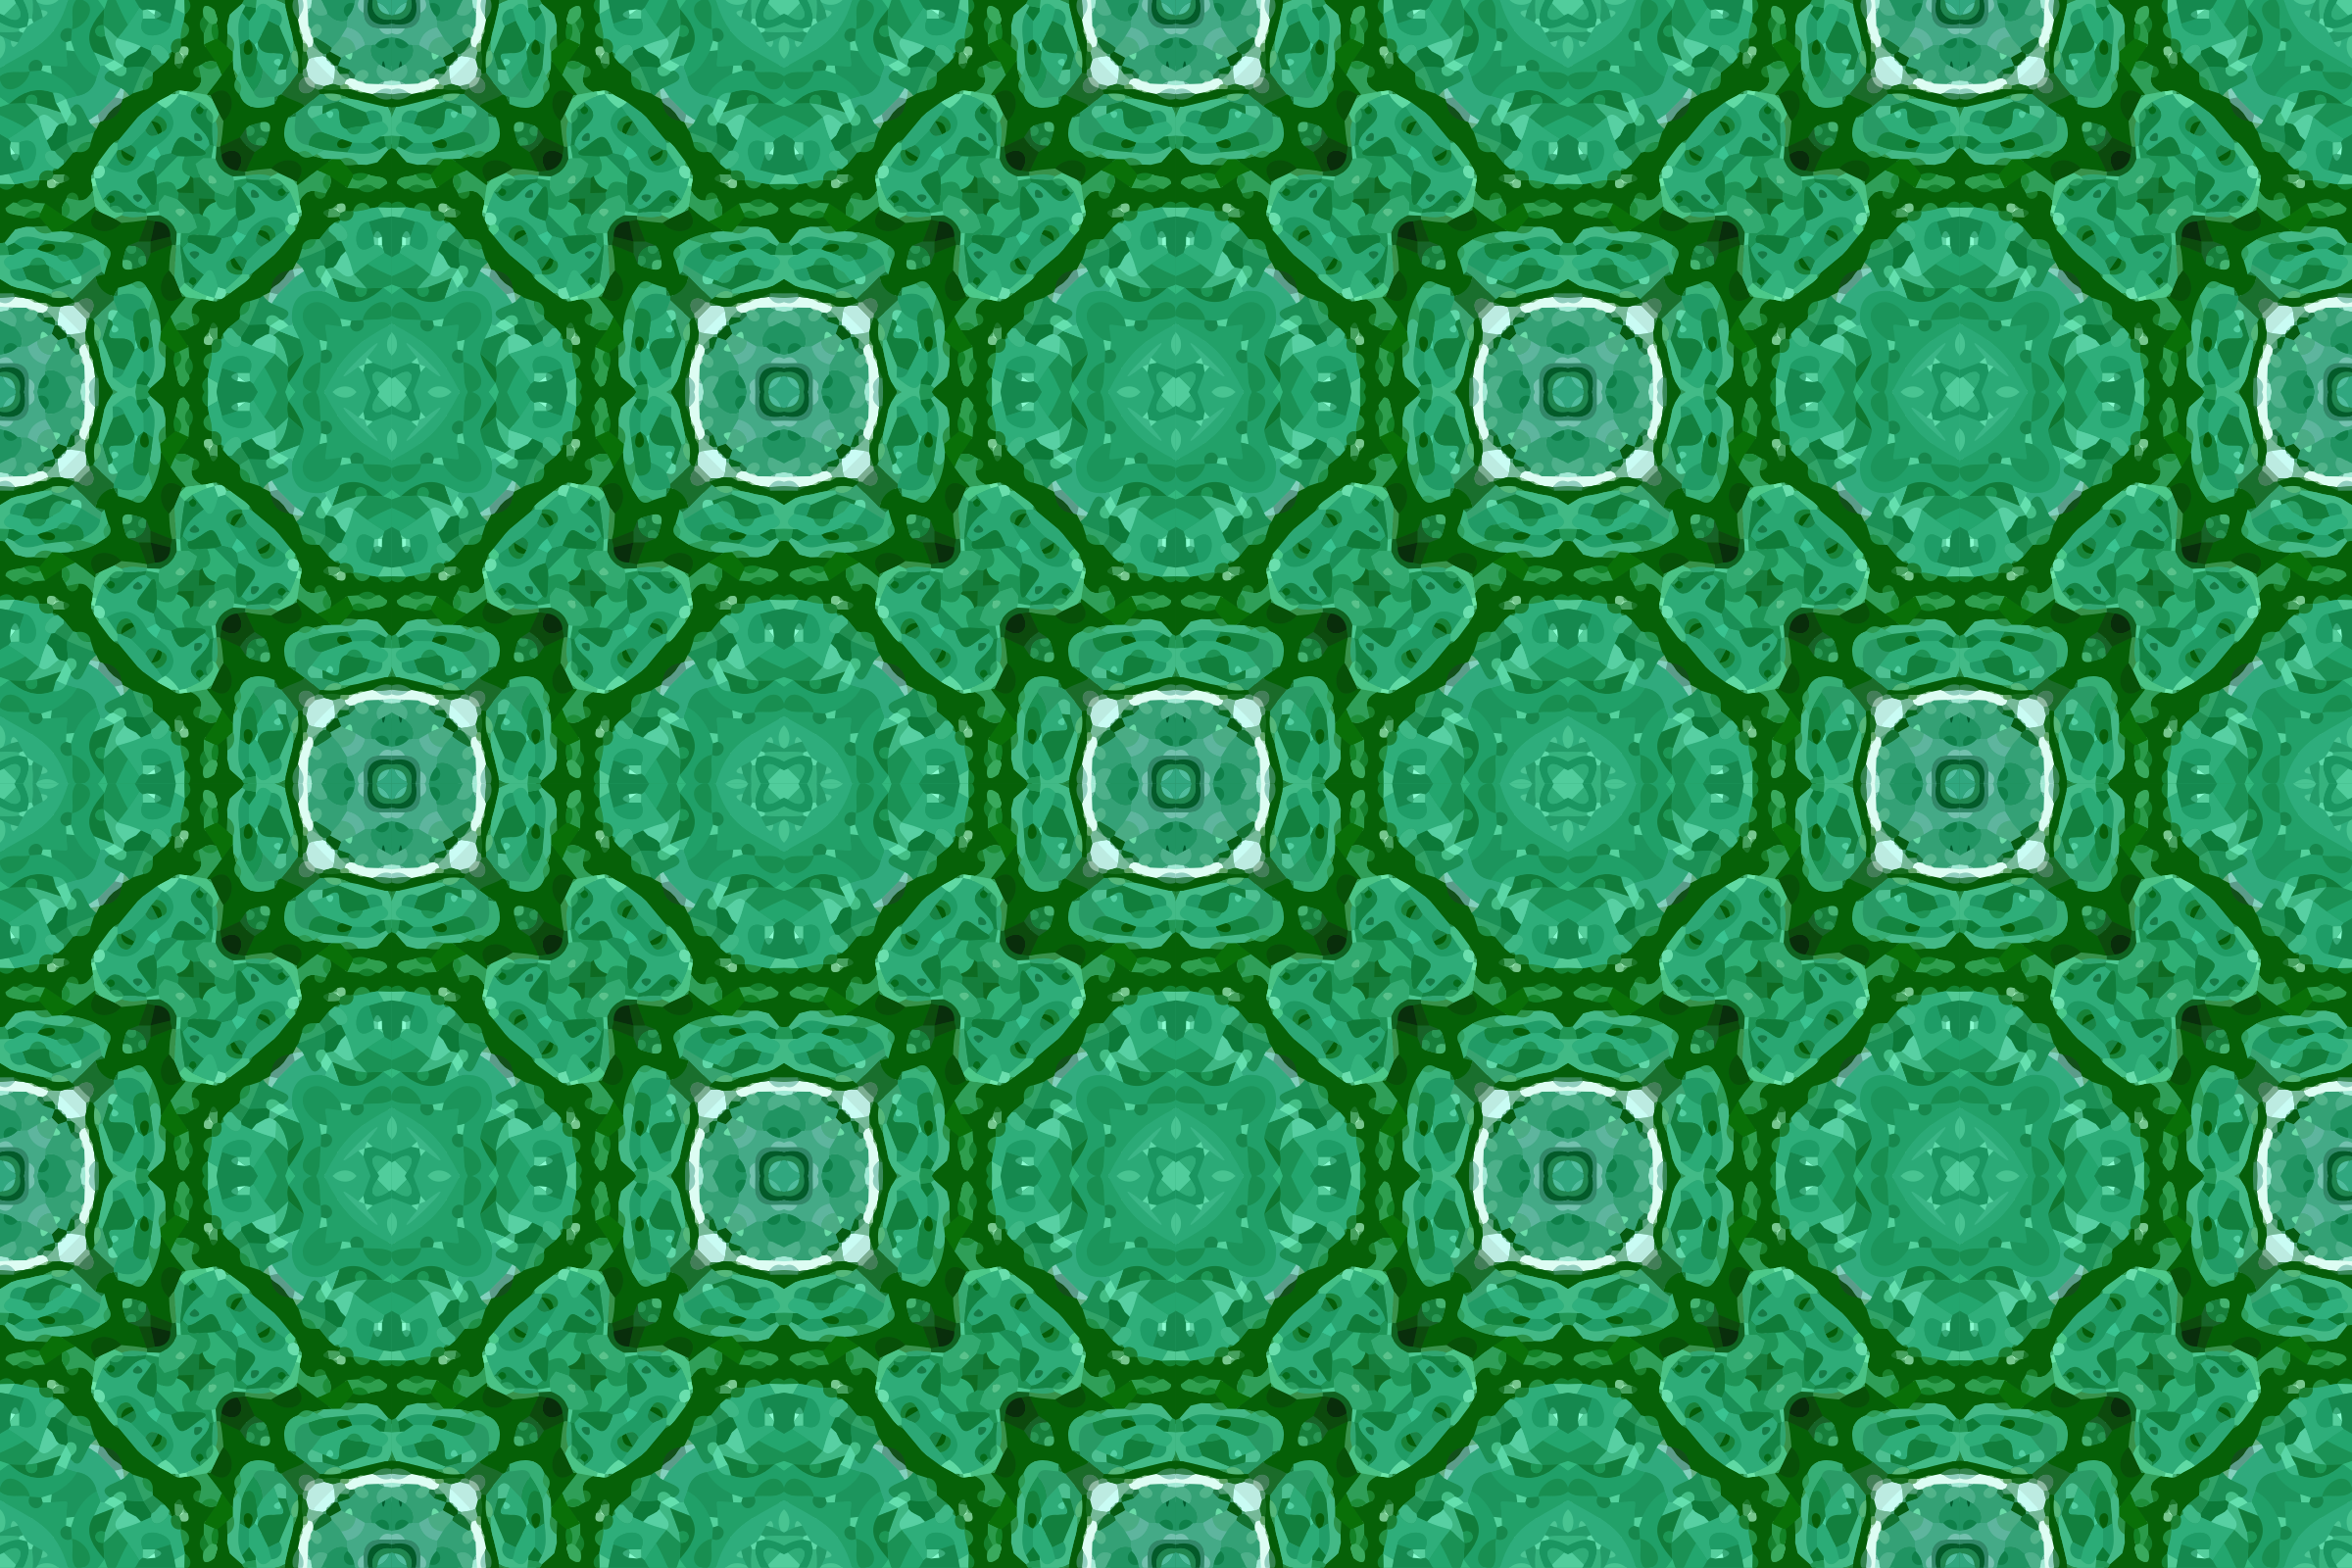 Background pattern 185 (colour 2) by Firkin